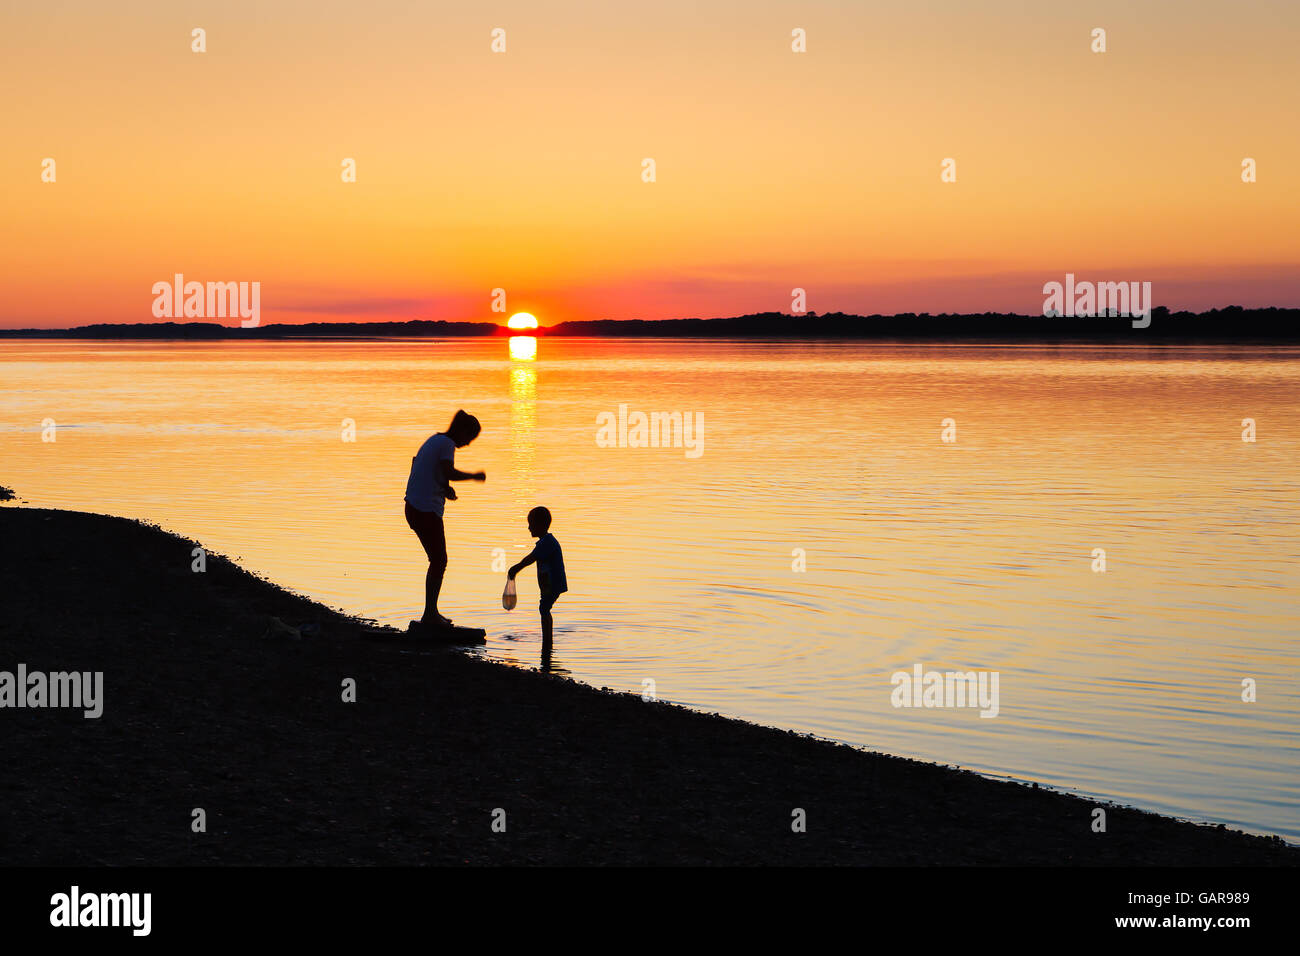 mother and son enjoying their family time alongside river during beautiful sunset - Stock Image